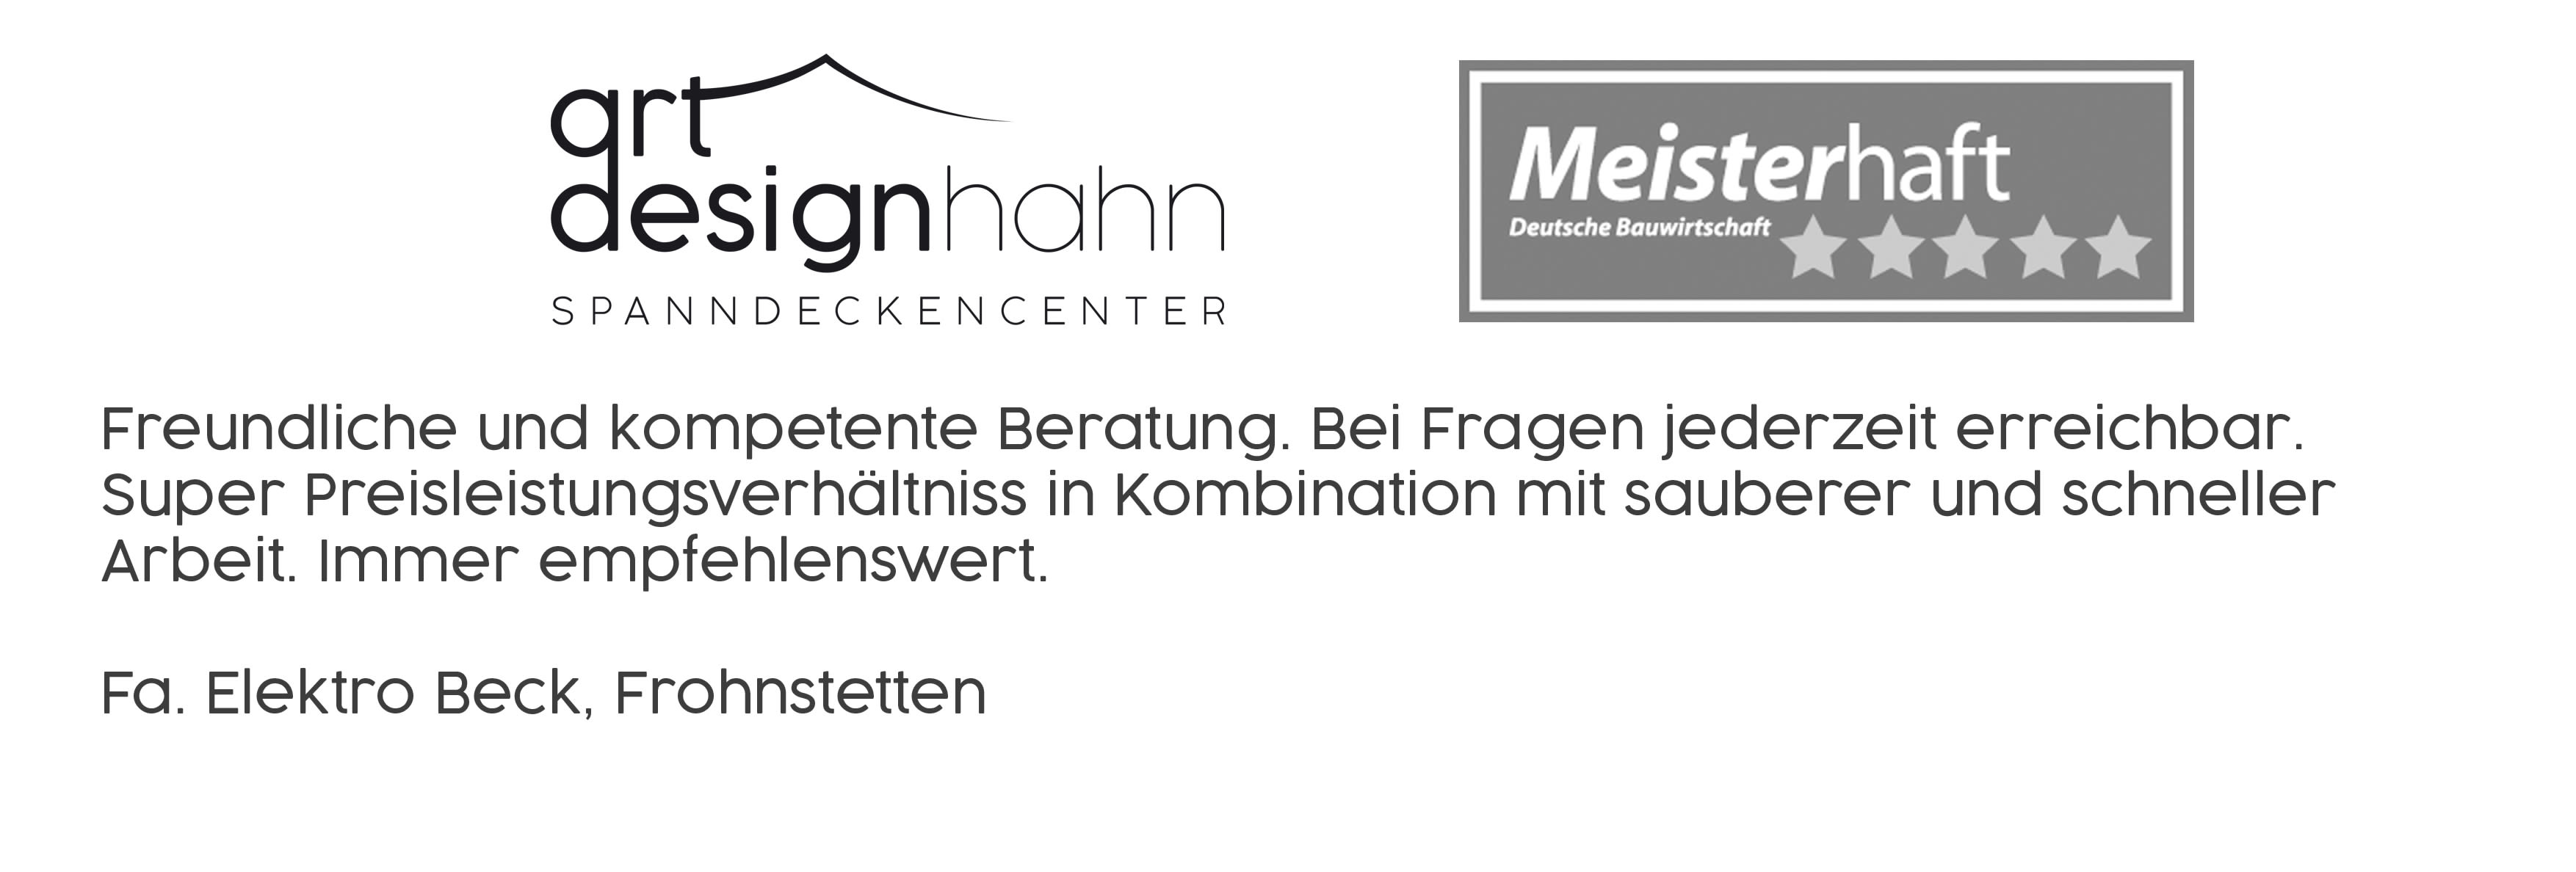 Art Design Hahn Meisterhafte Rezension 28